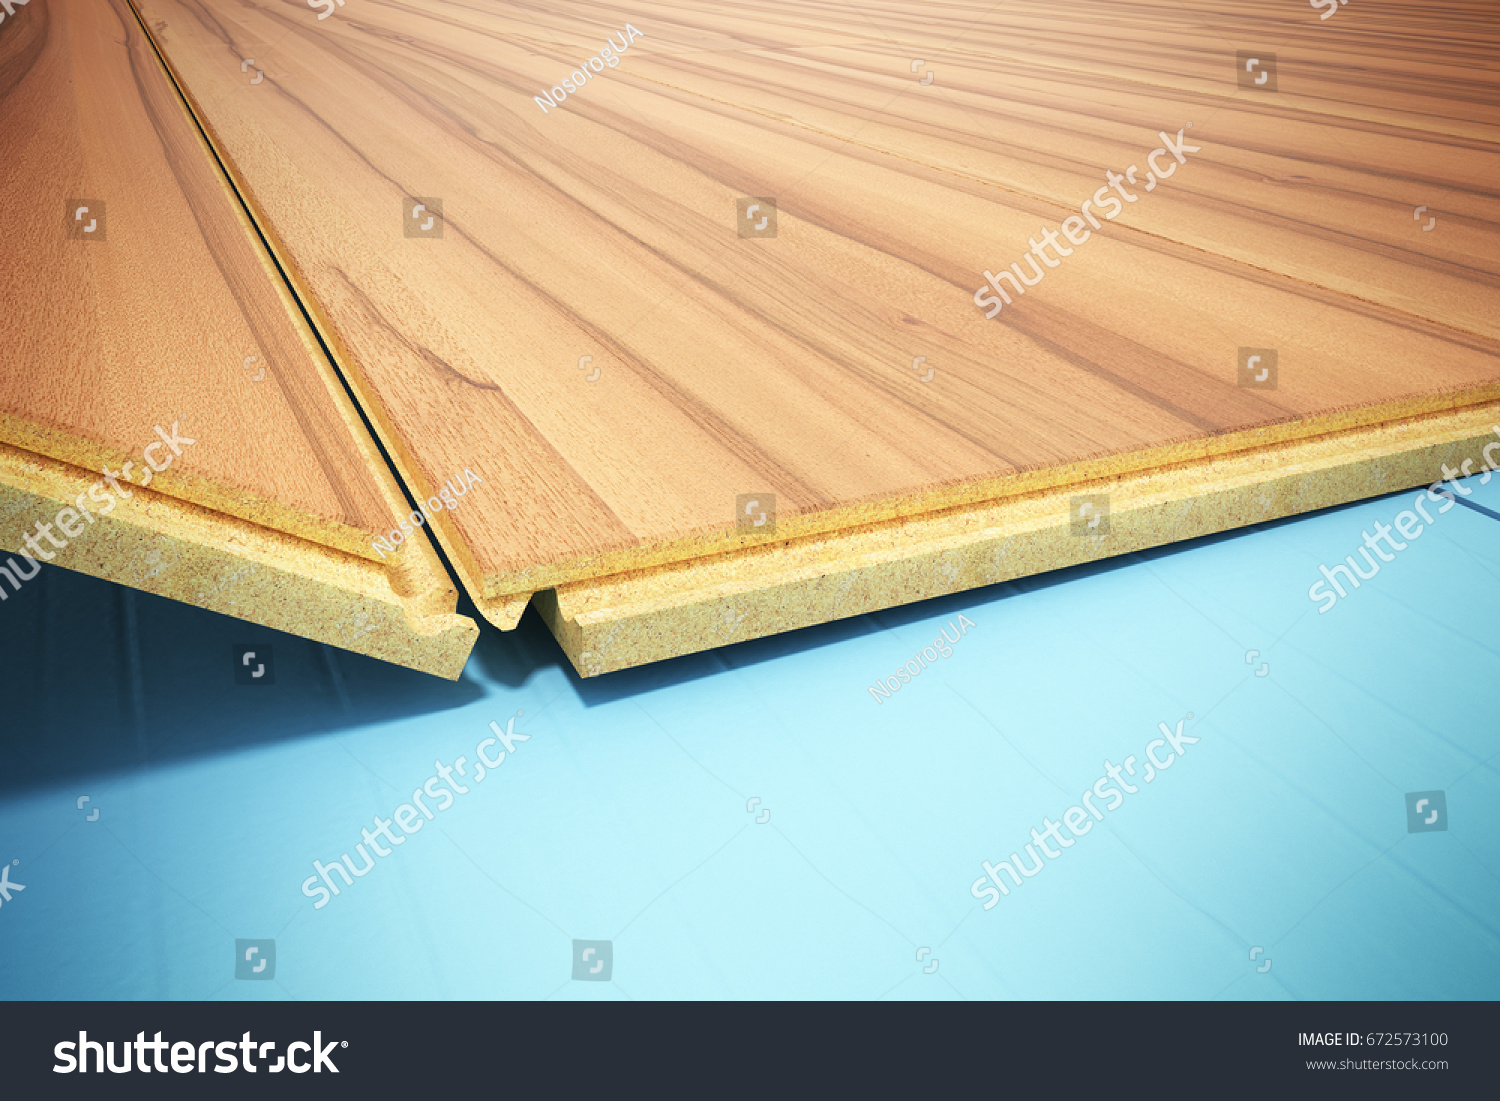 Installing Wooden Laminate Flooring With Insulation And Soundproofing Sheets Laying Step By 3d